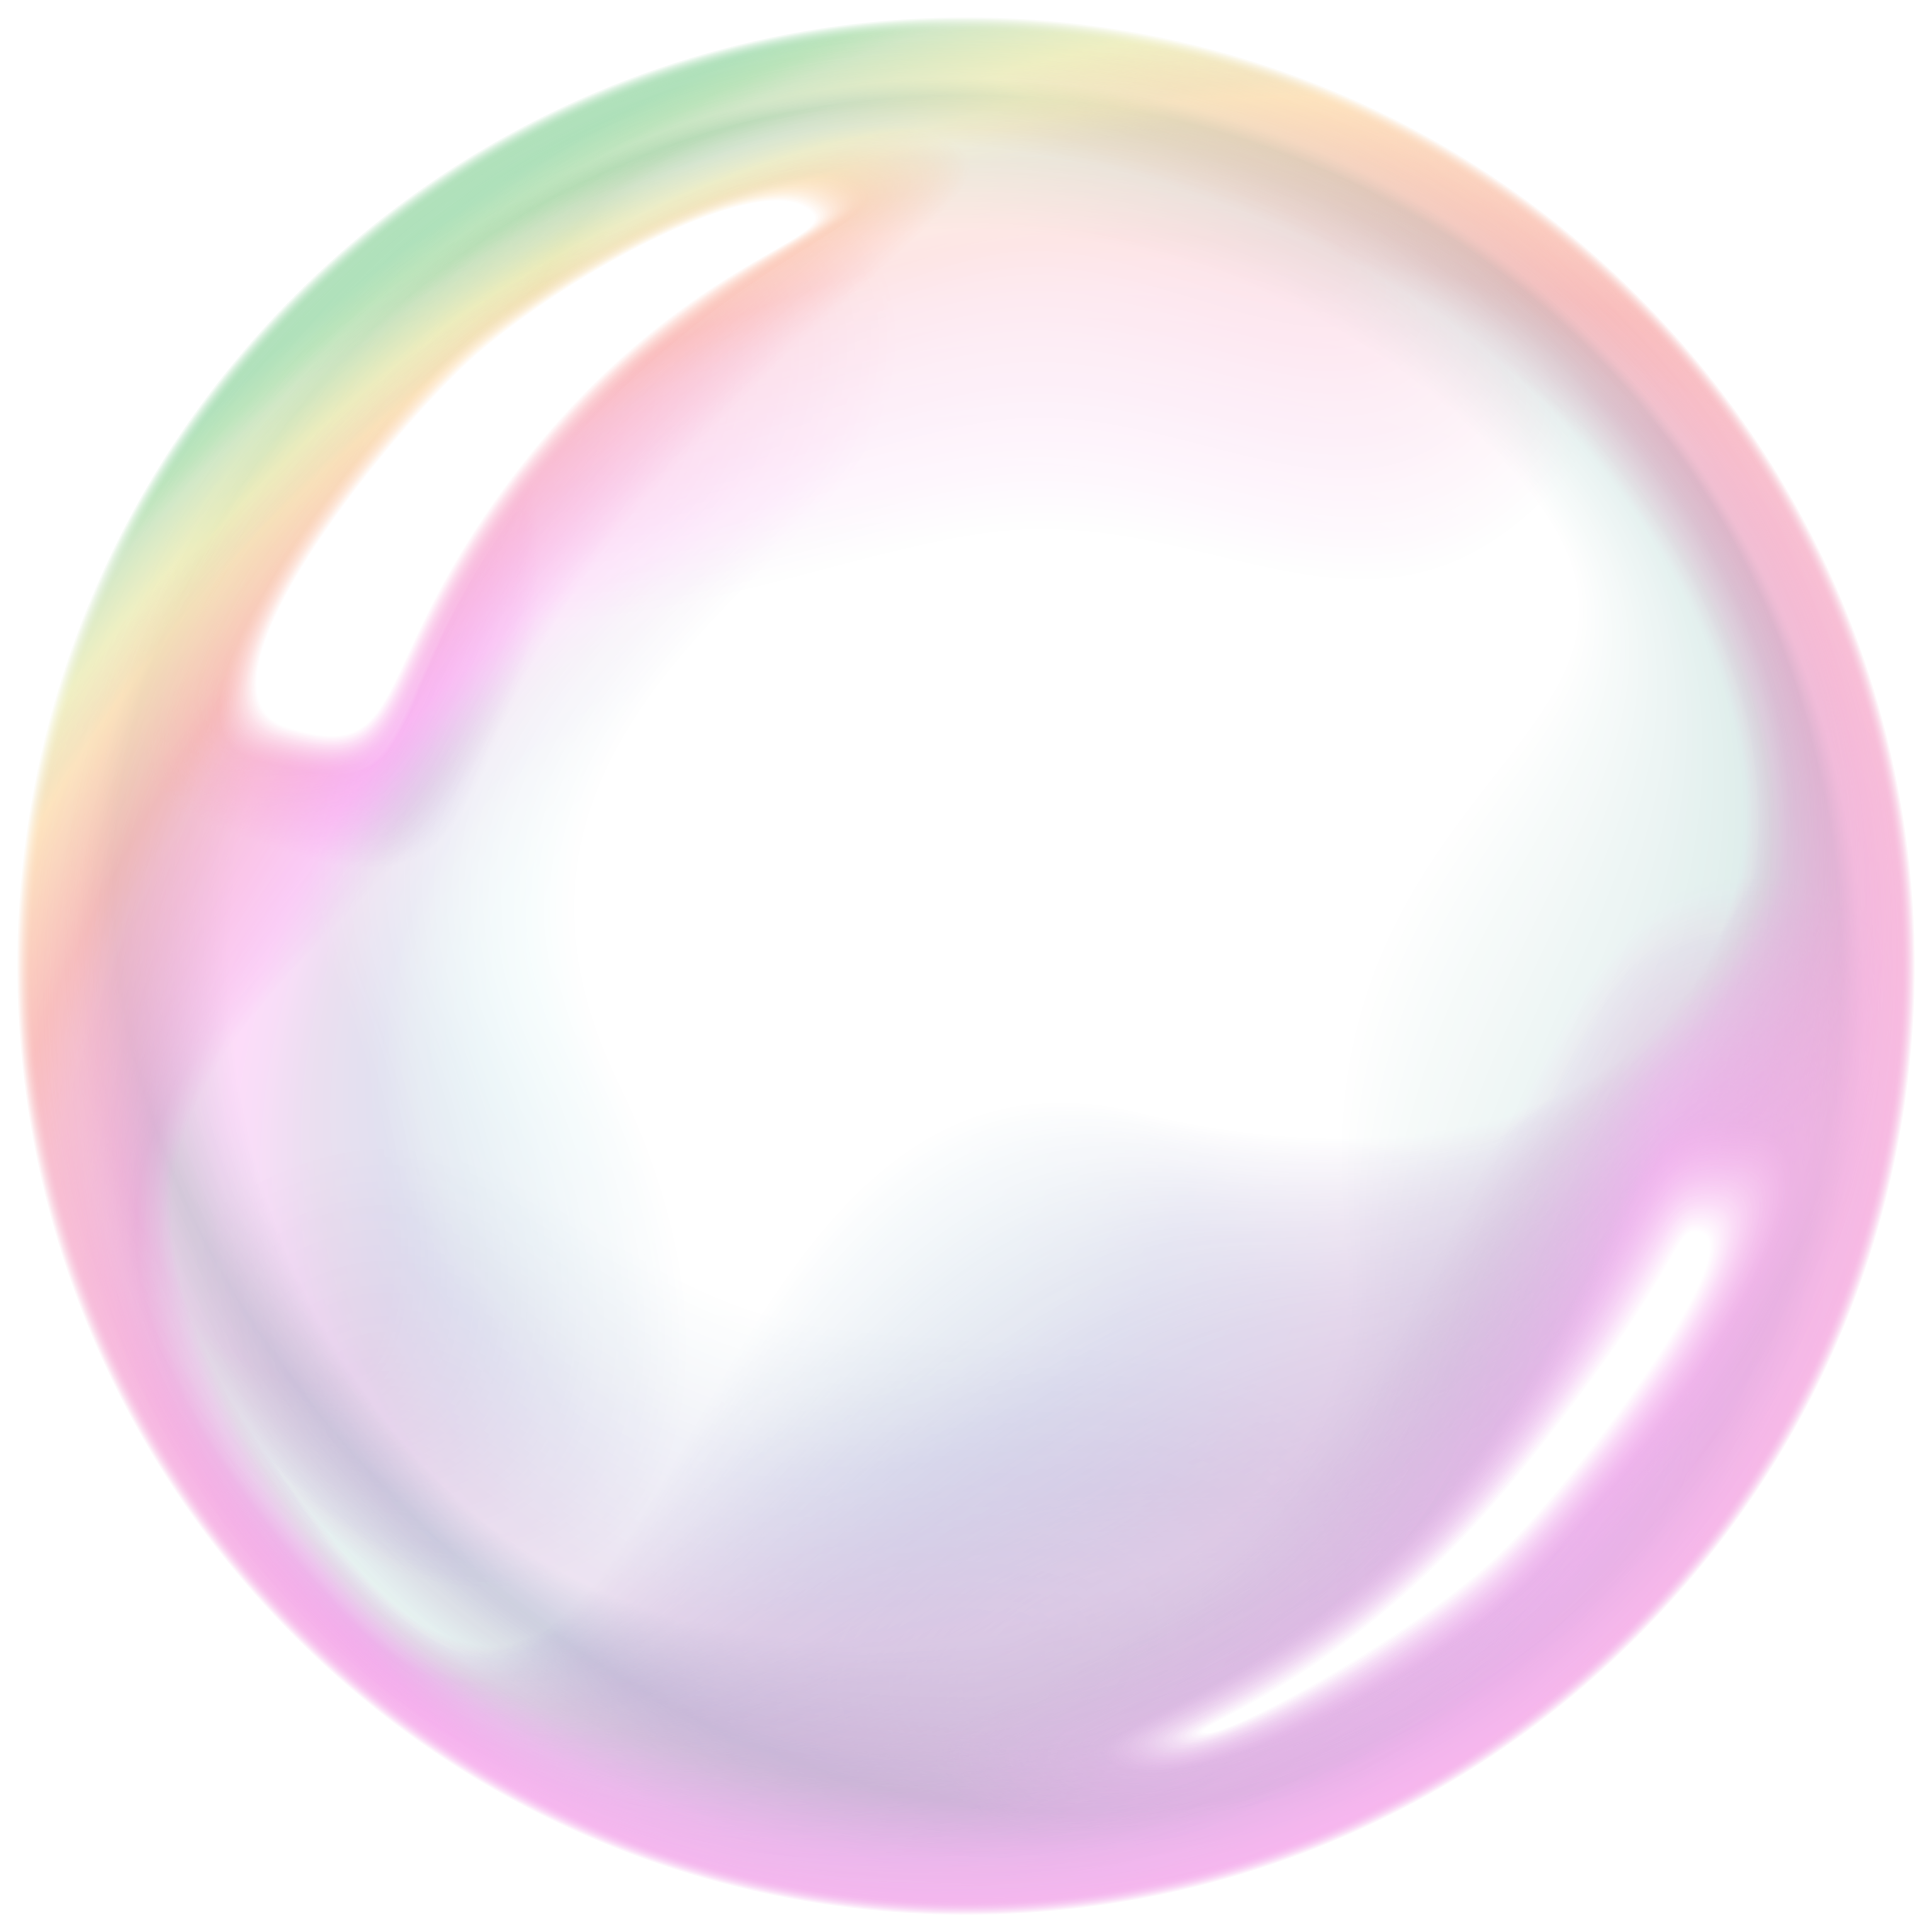 Bubble png. Sphere transparent image gallery